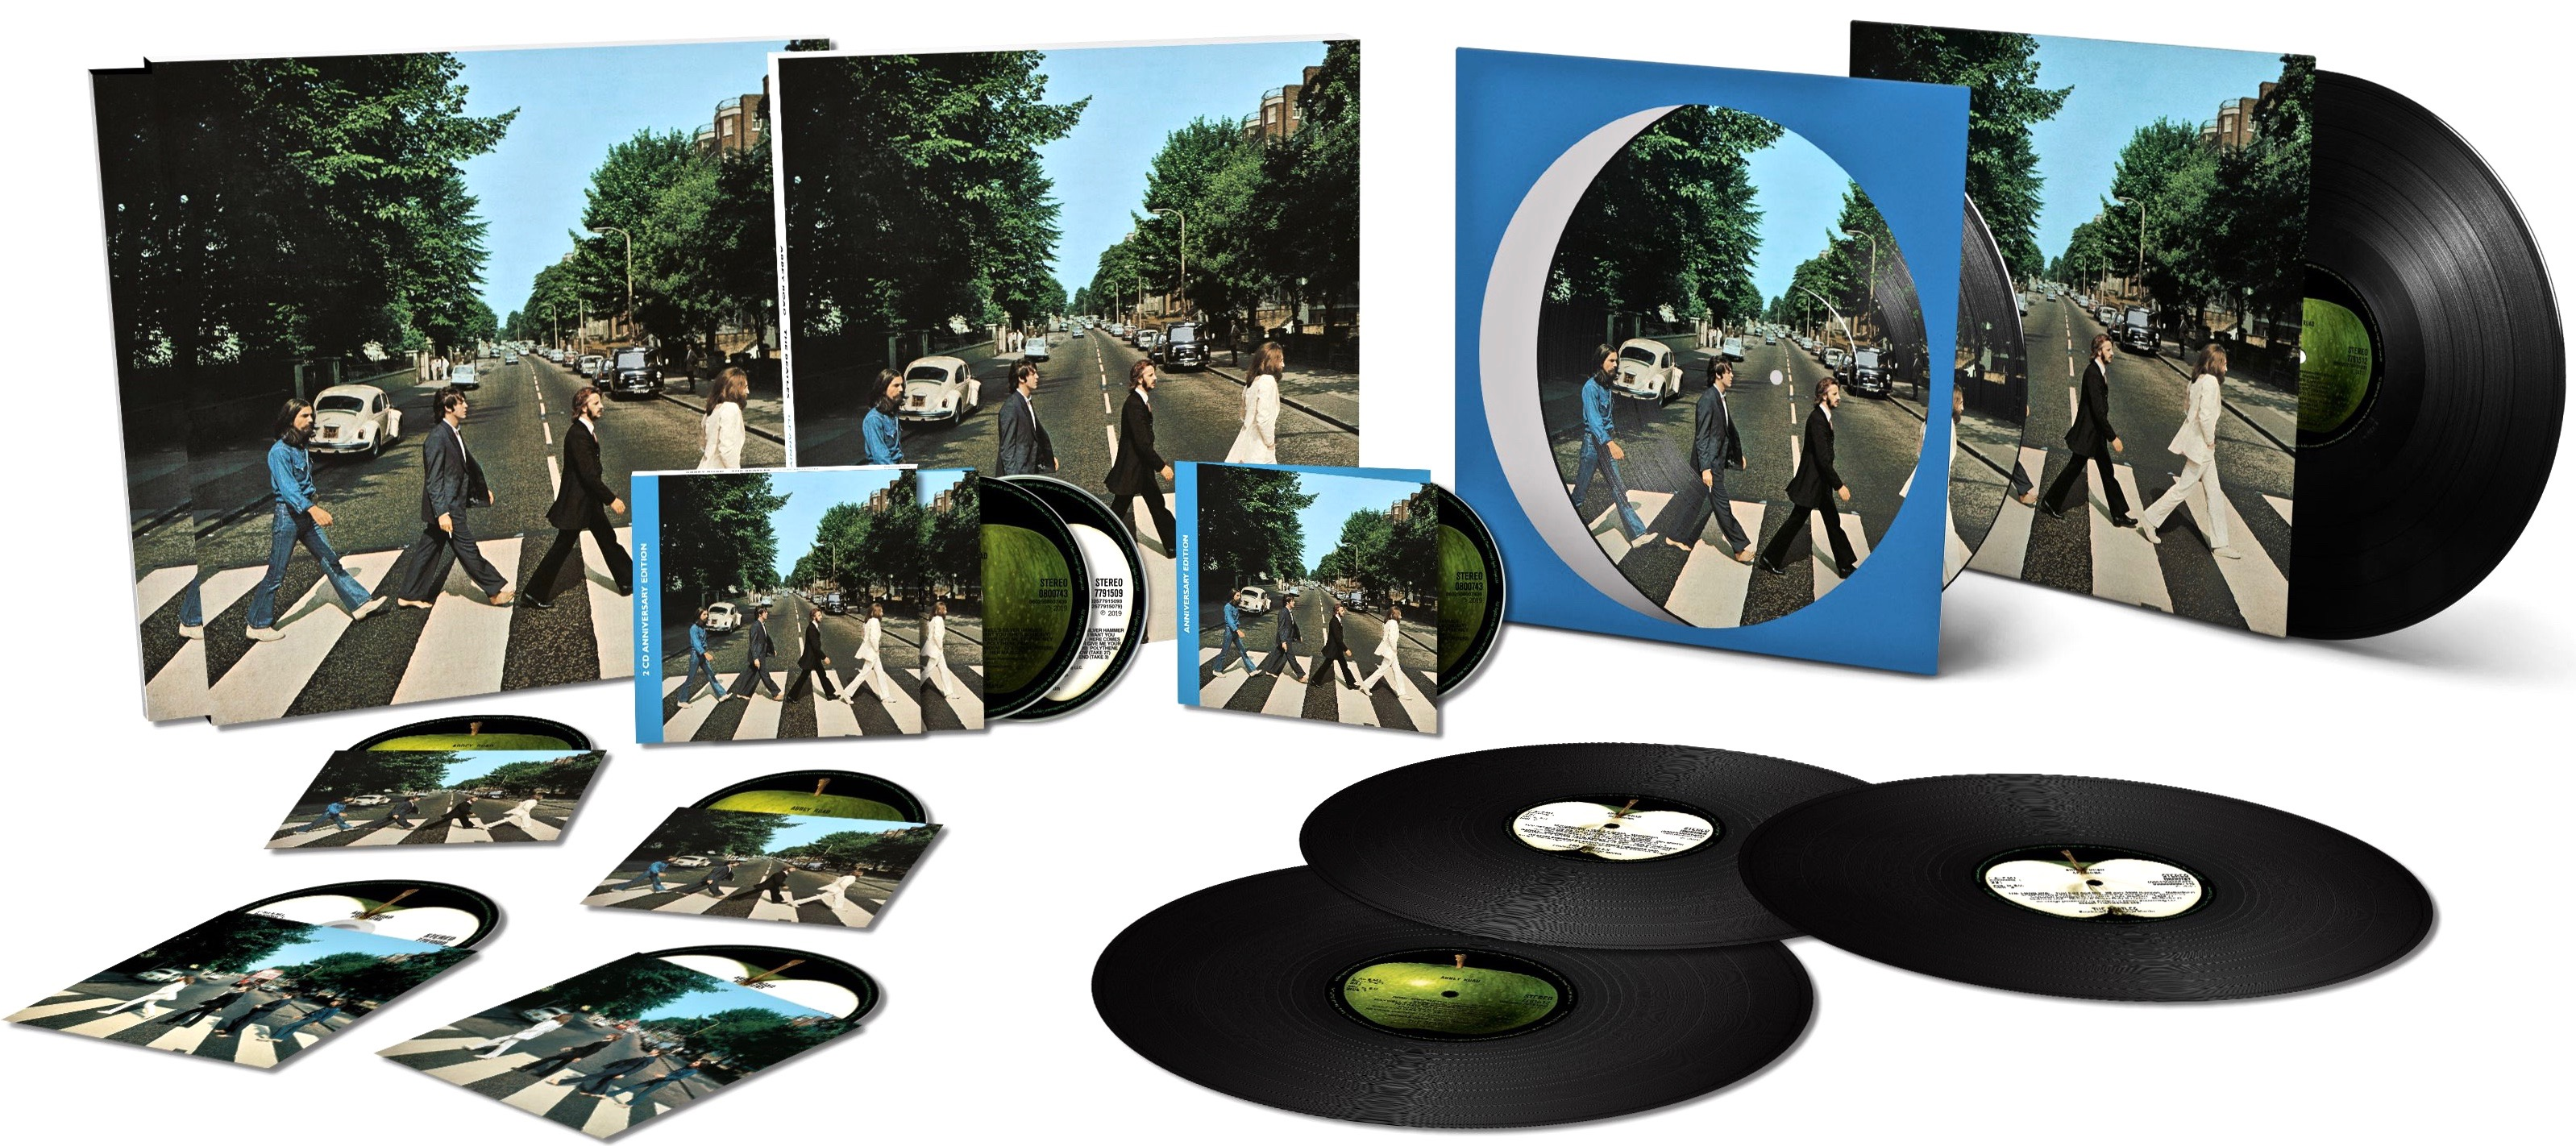 The Beatles Revisit Abbey Road Beatles Blog